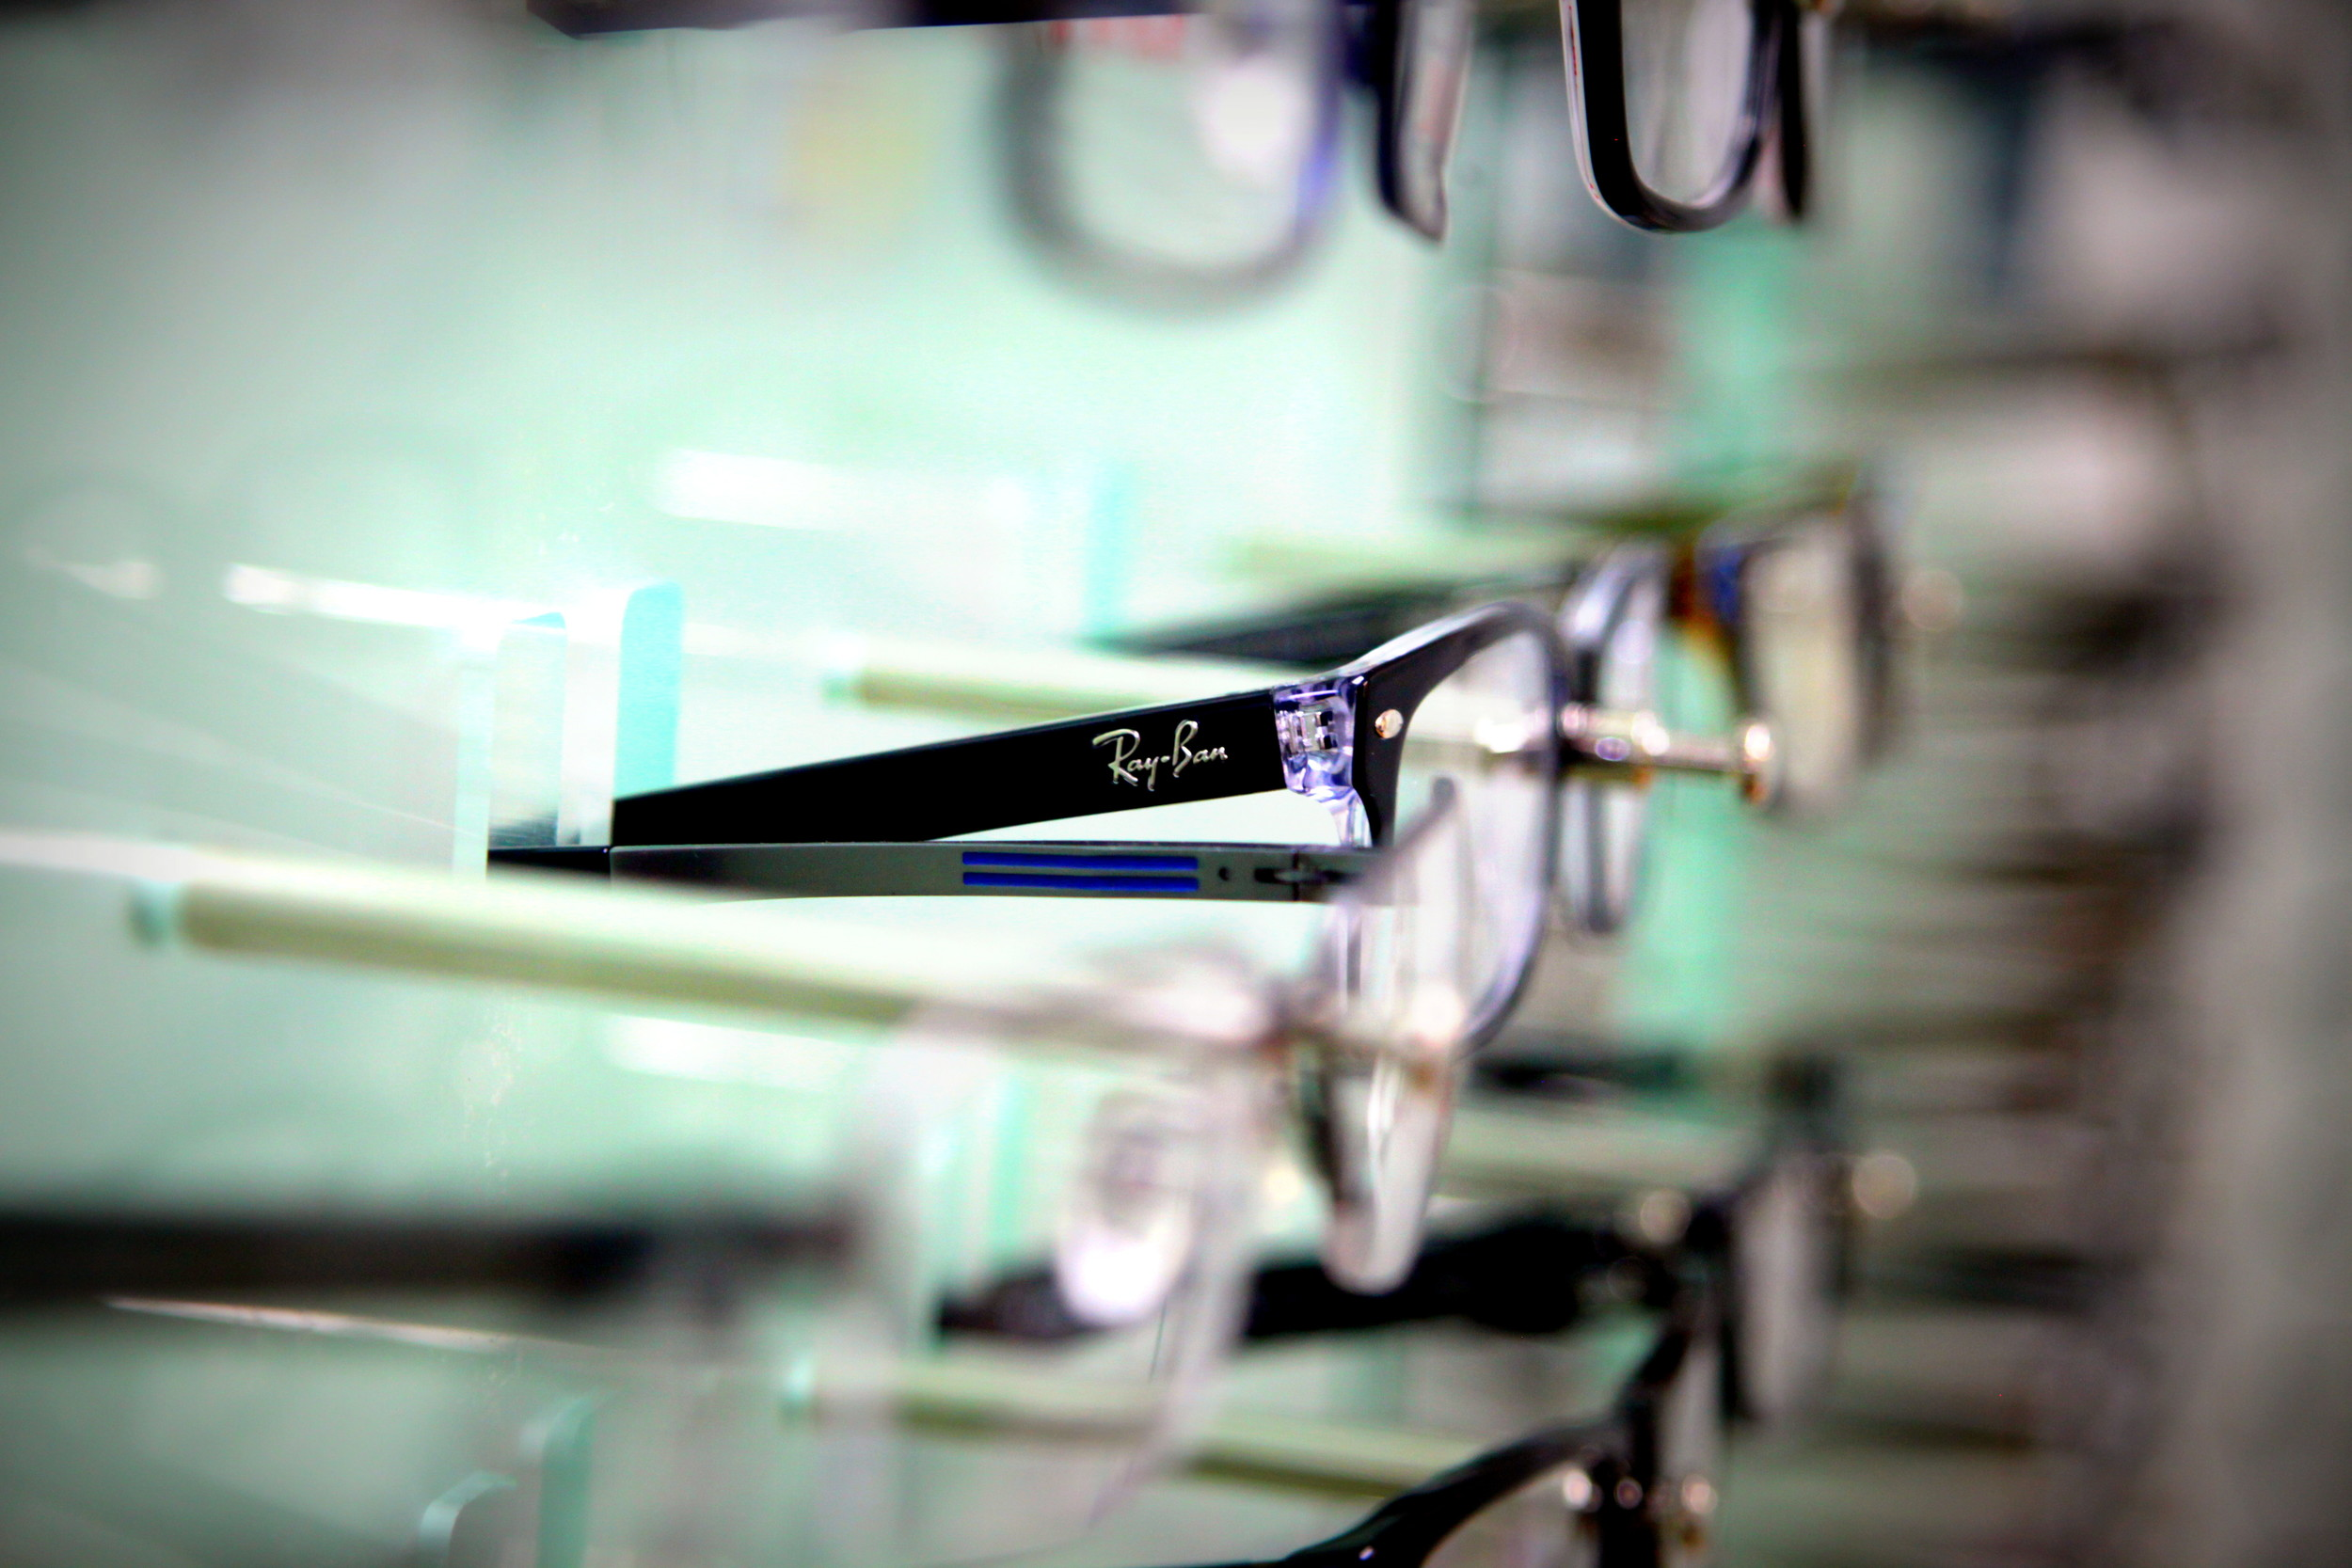 eyeglasses - ray ban in middle